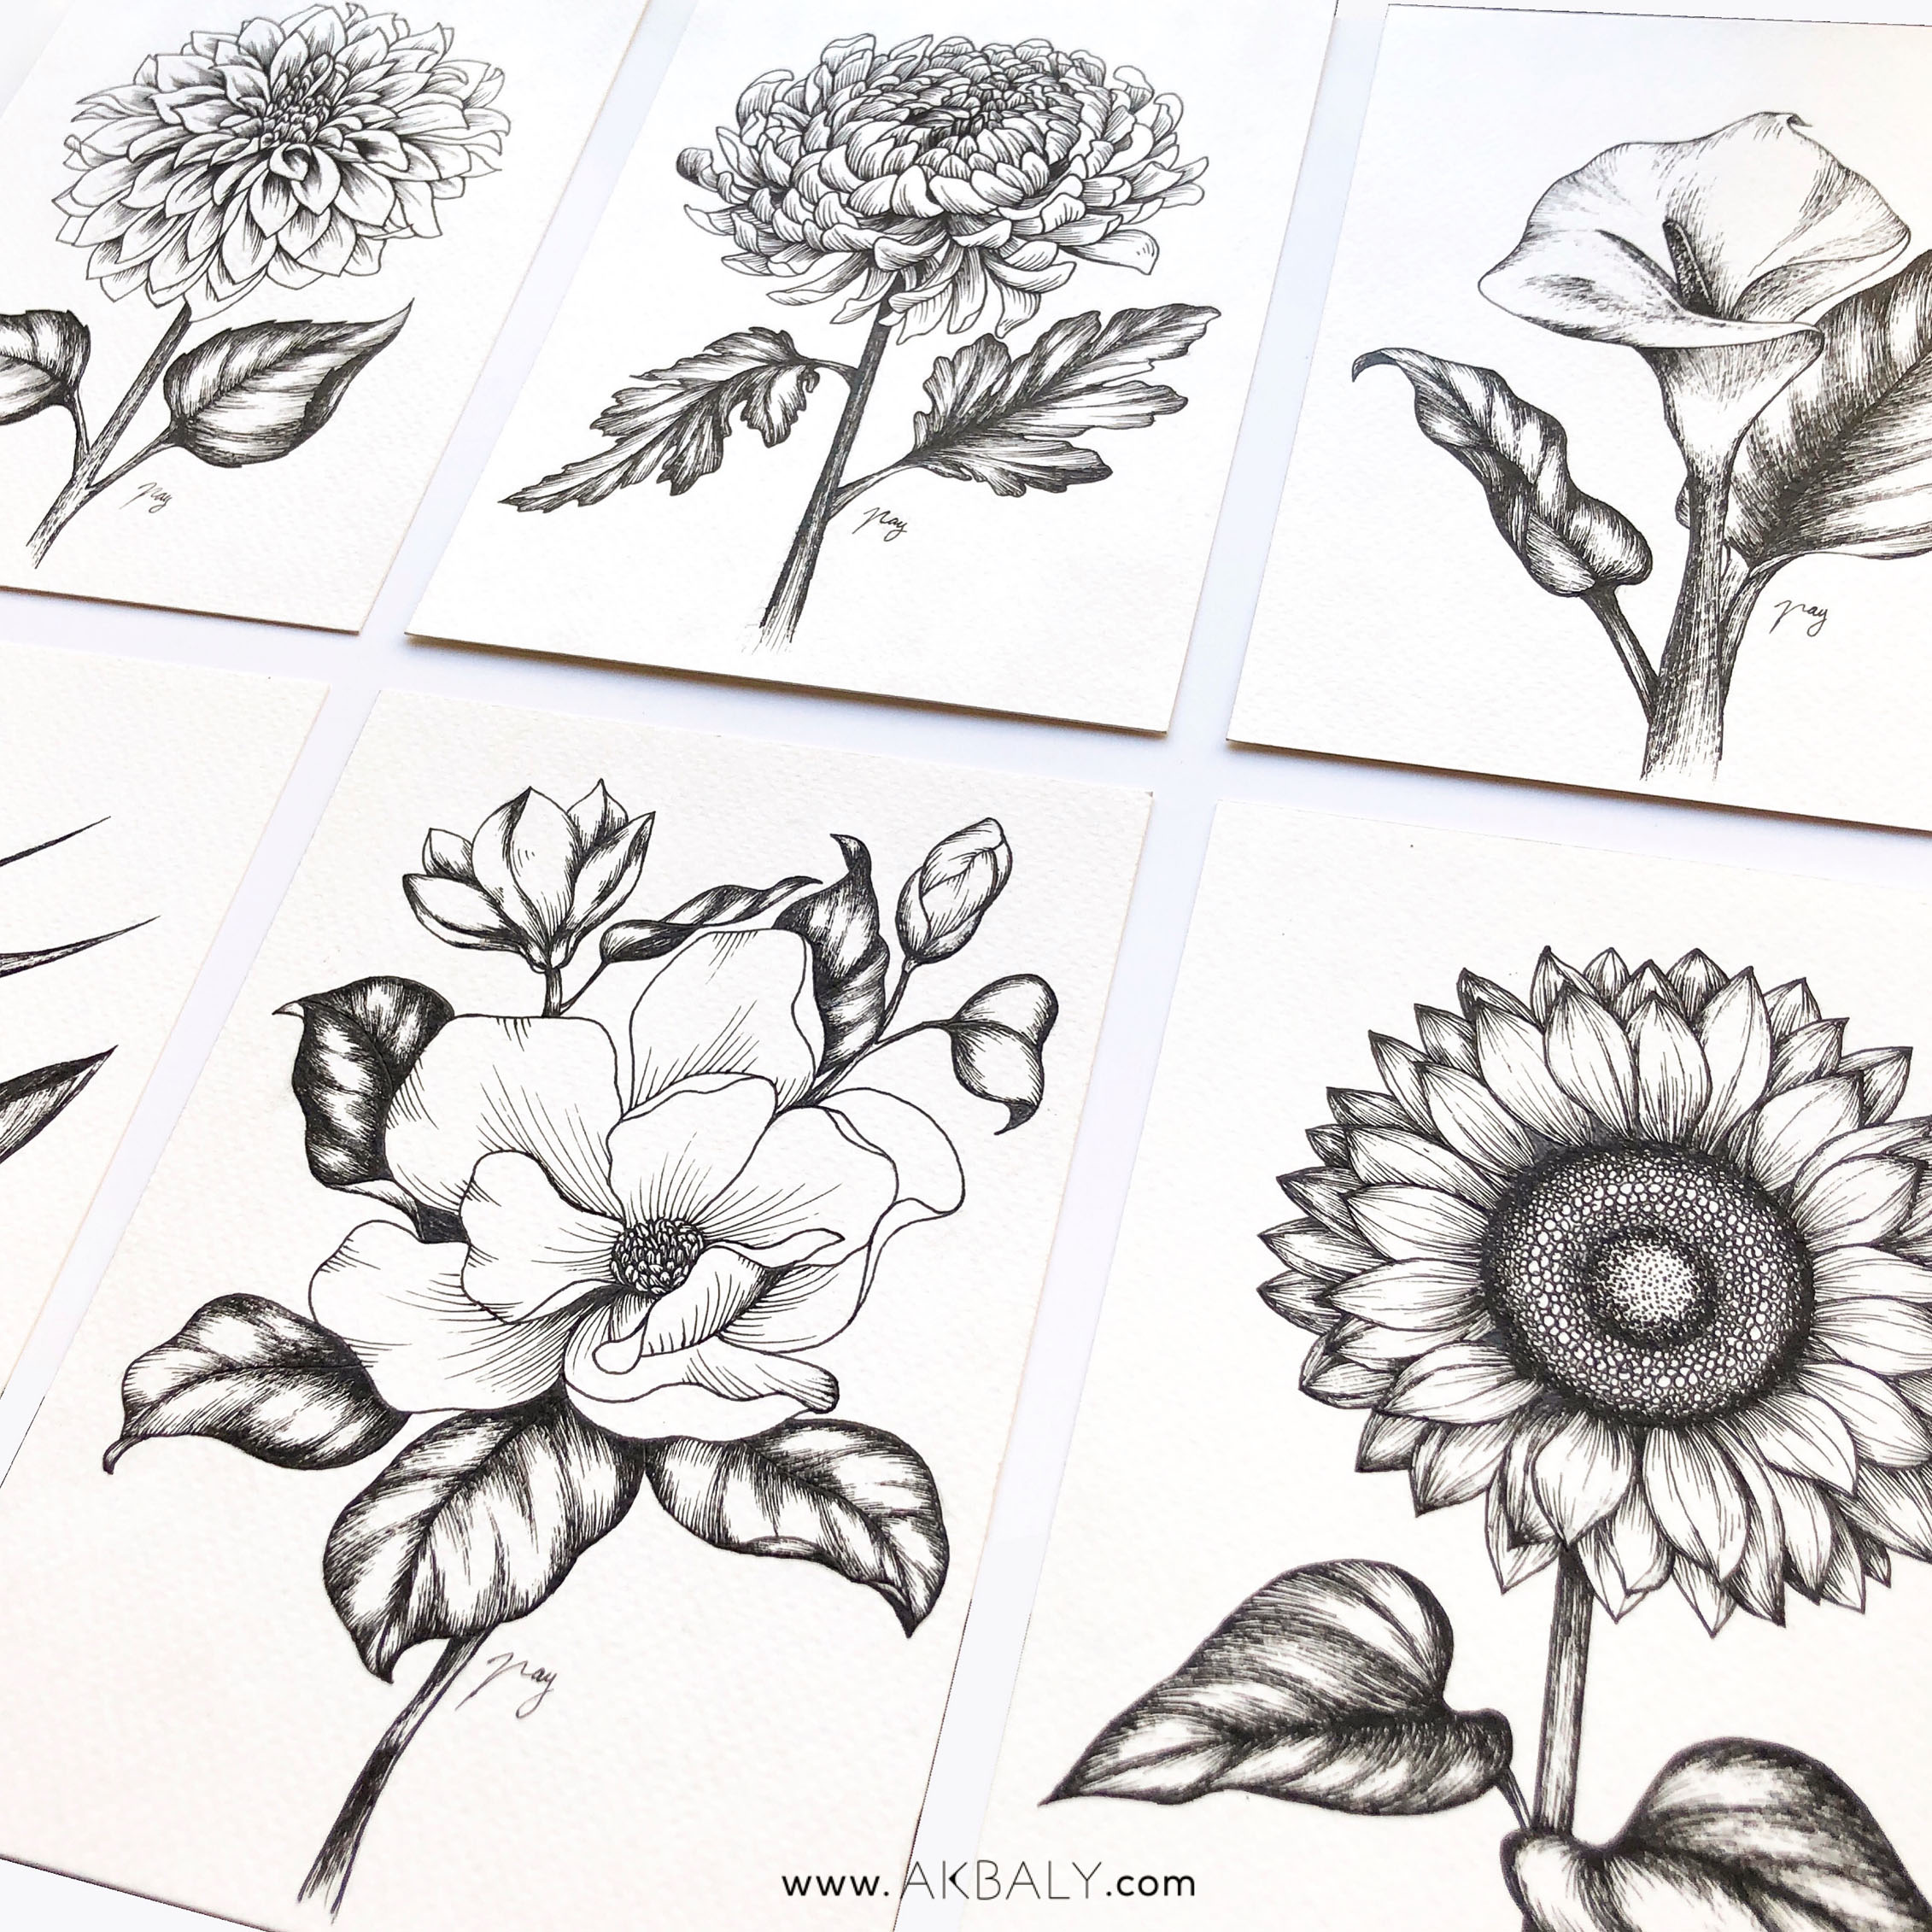 Illustration Botanical Collection by Akbaly Prints Postcards Pen and Ink